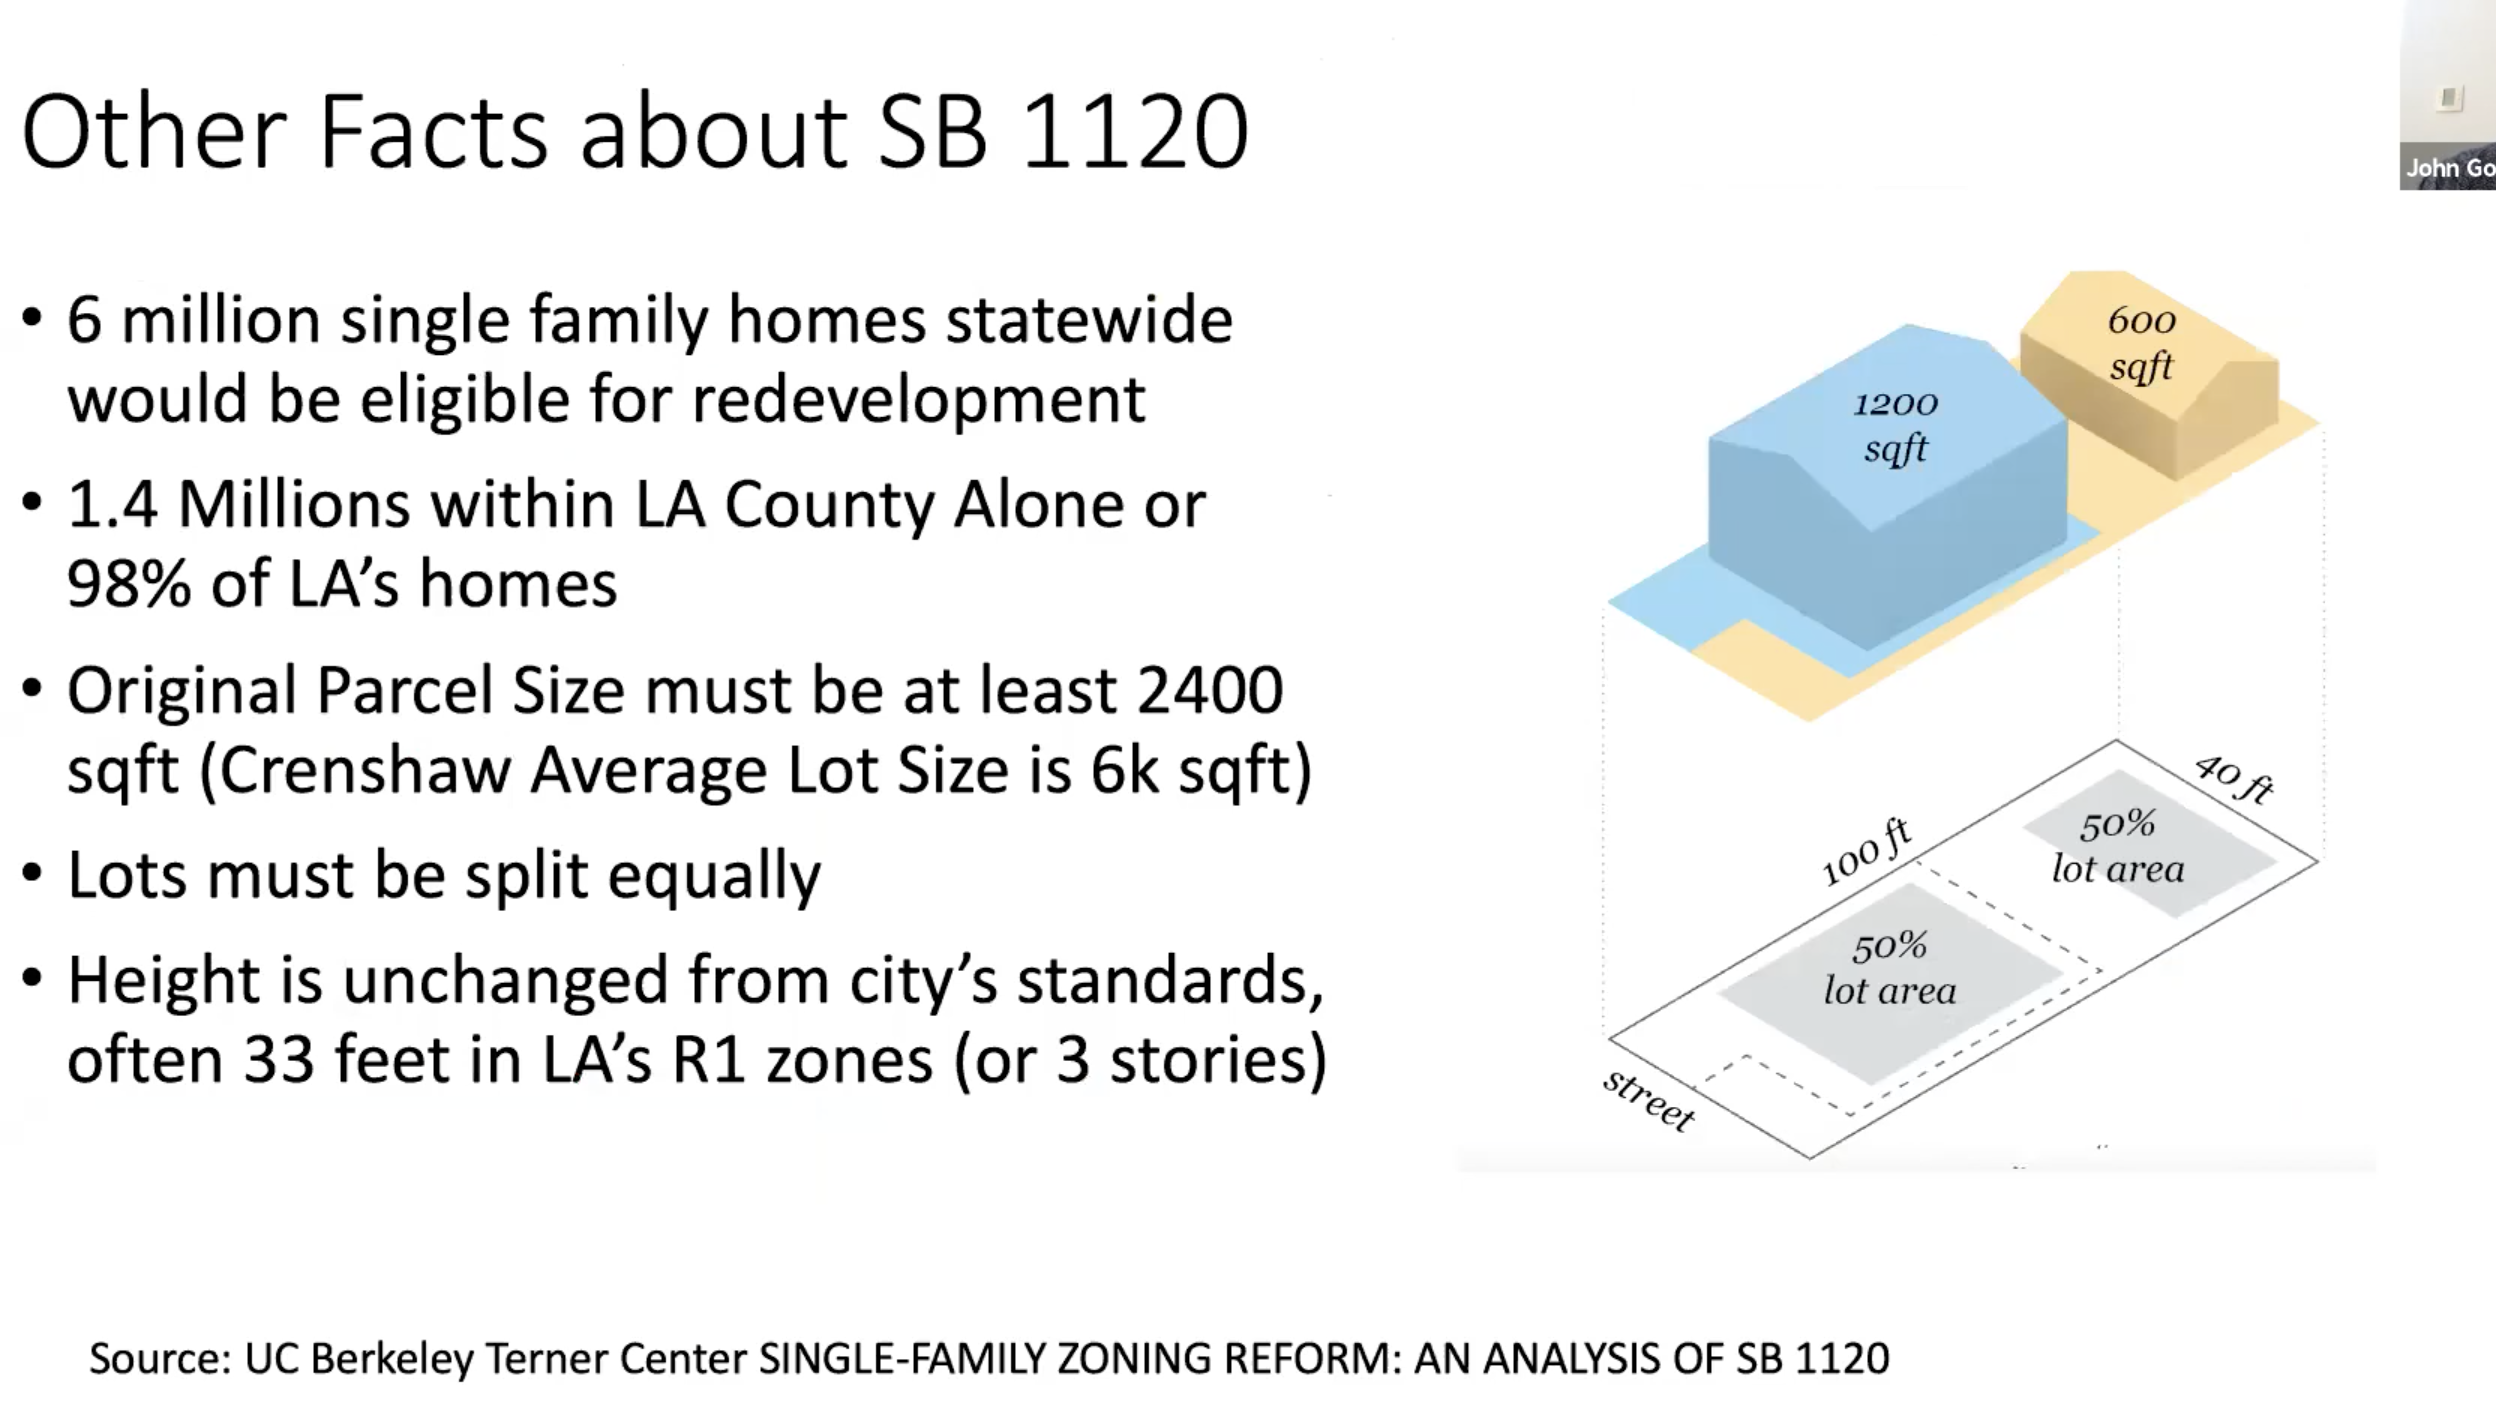 Facts About SB 1120